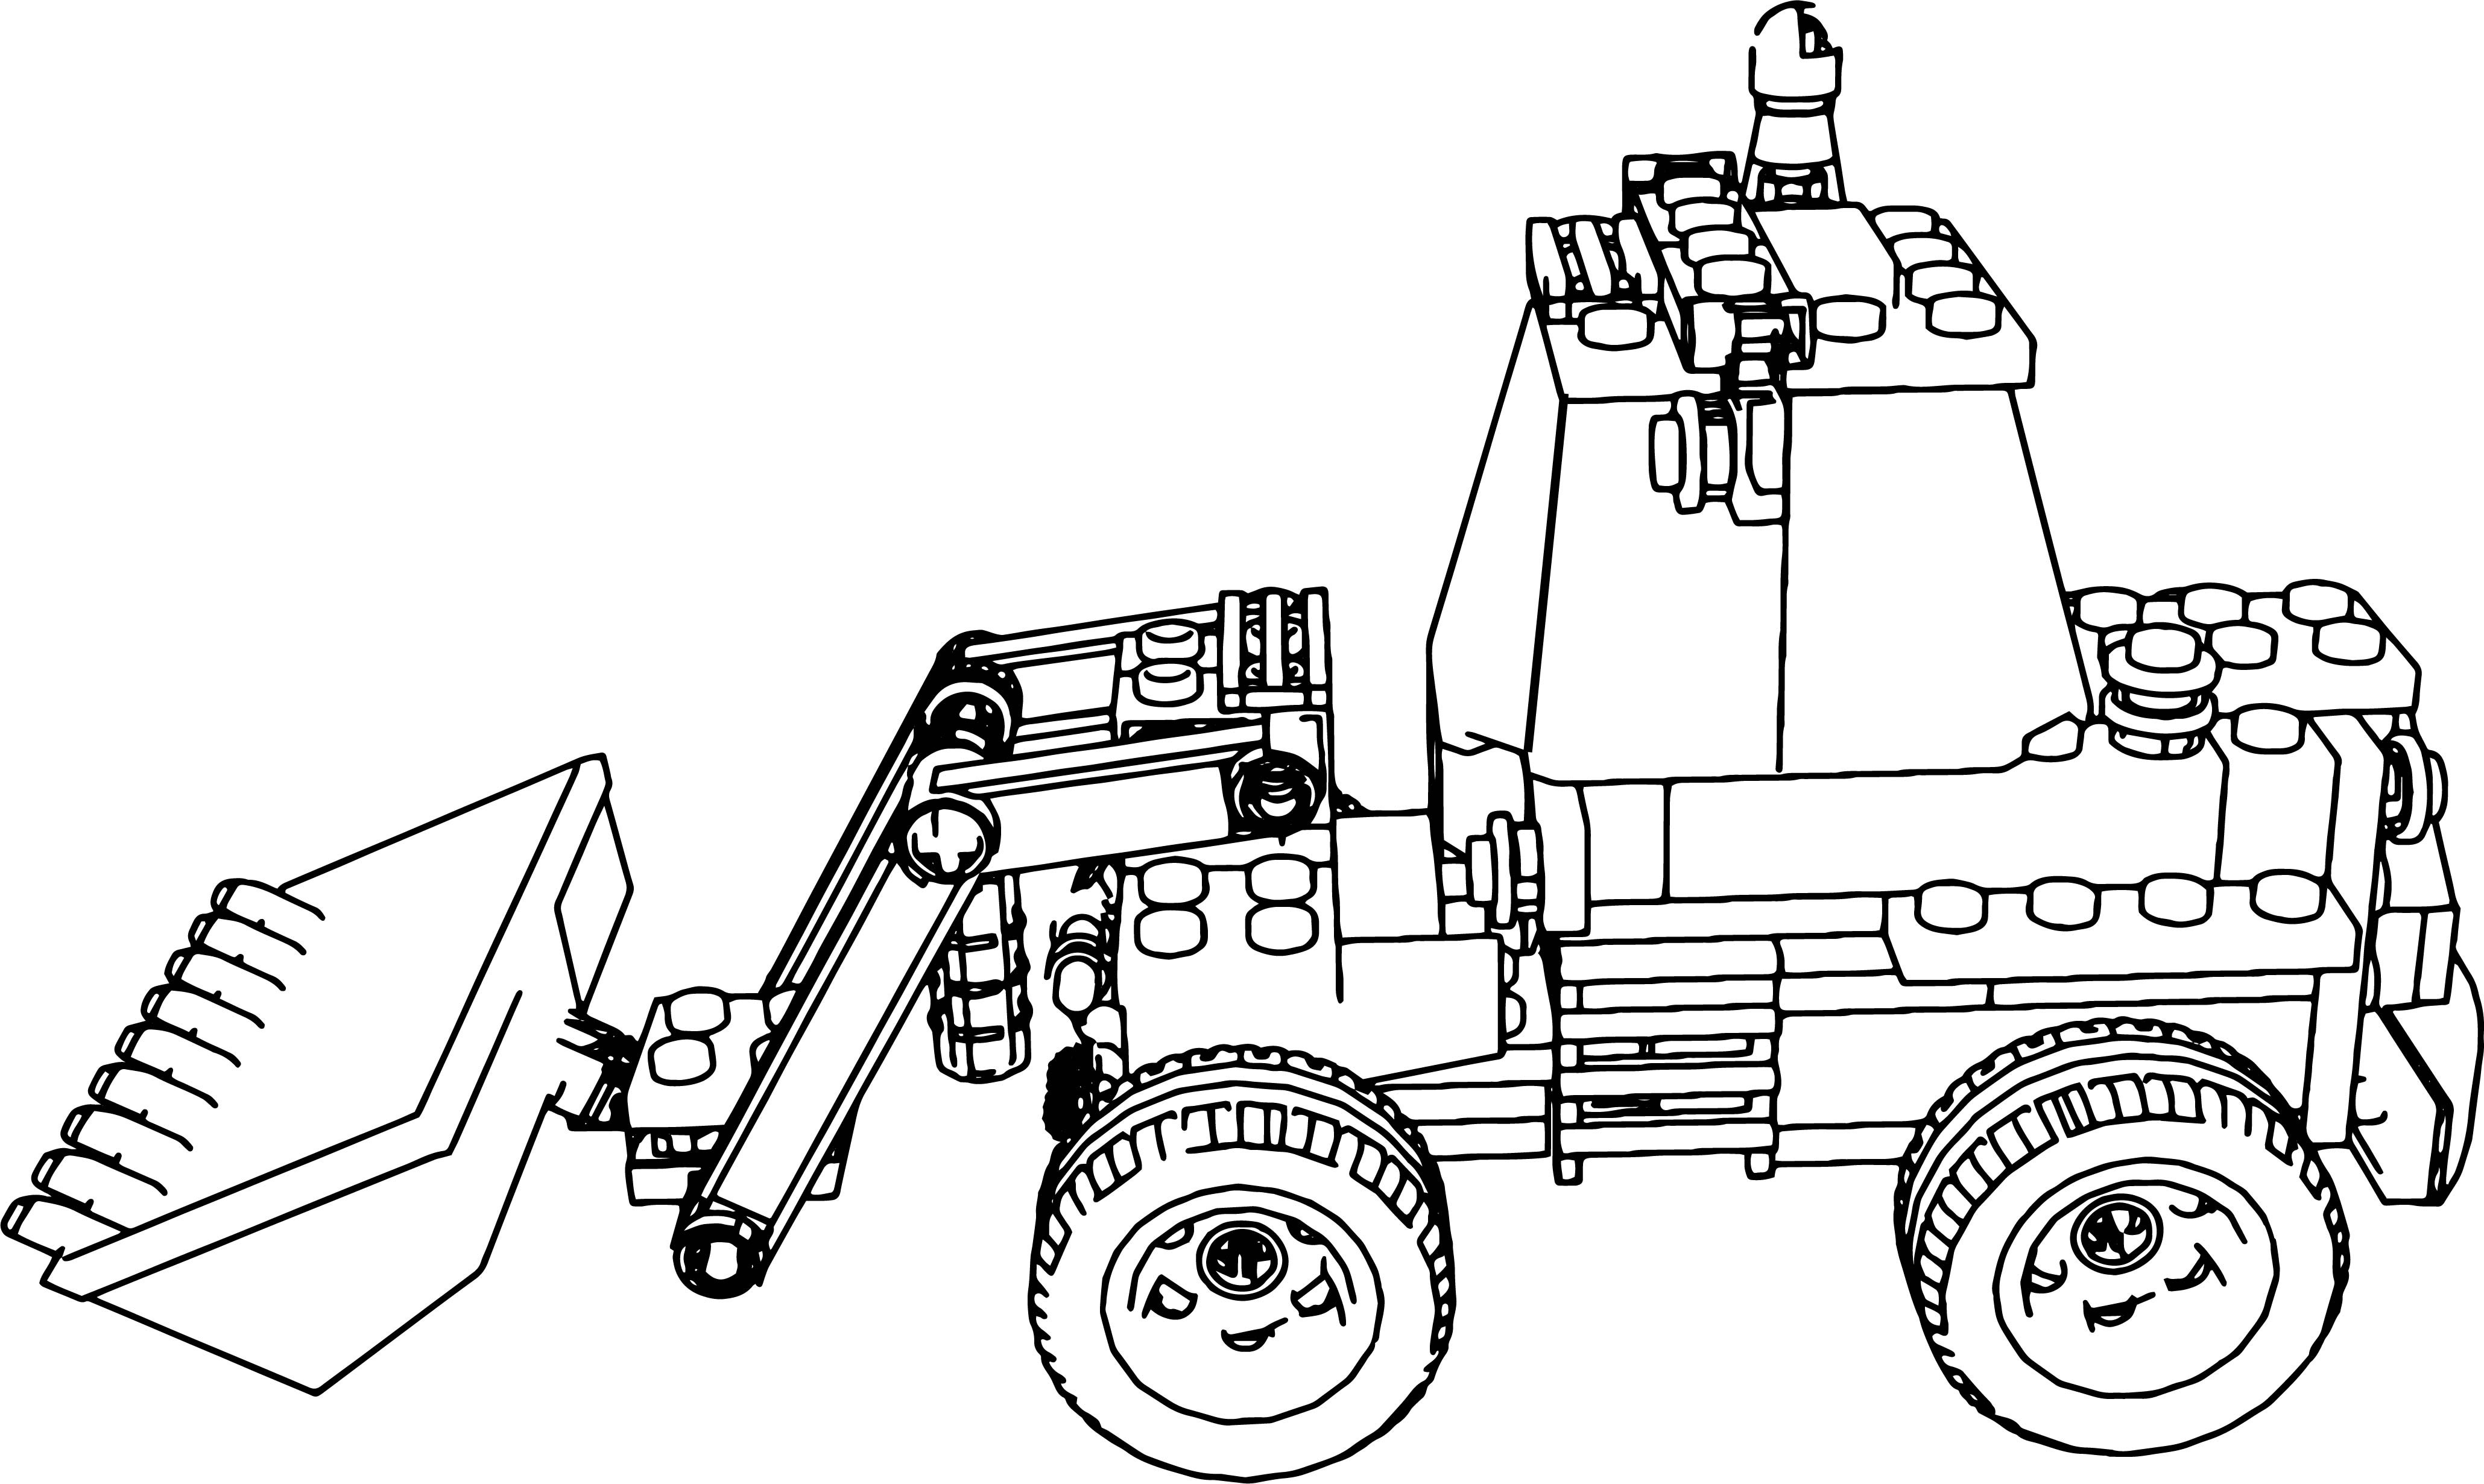 4119x2461 Lego Truck Coloring Page For Kids Awesome Imposing Ideas Fire